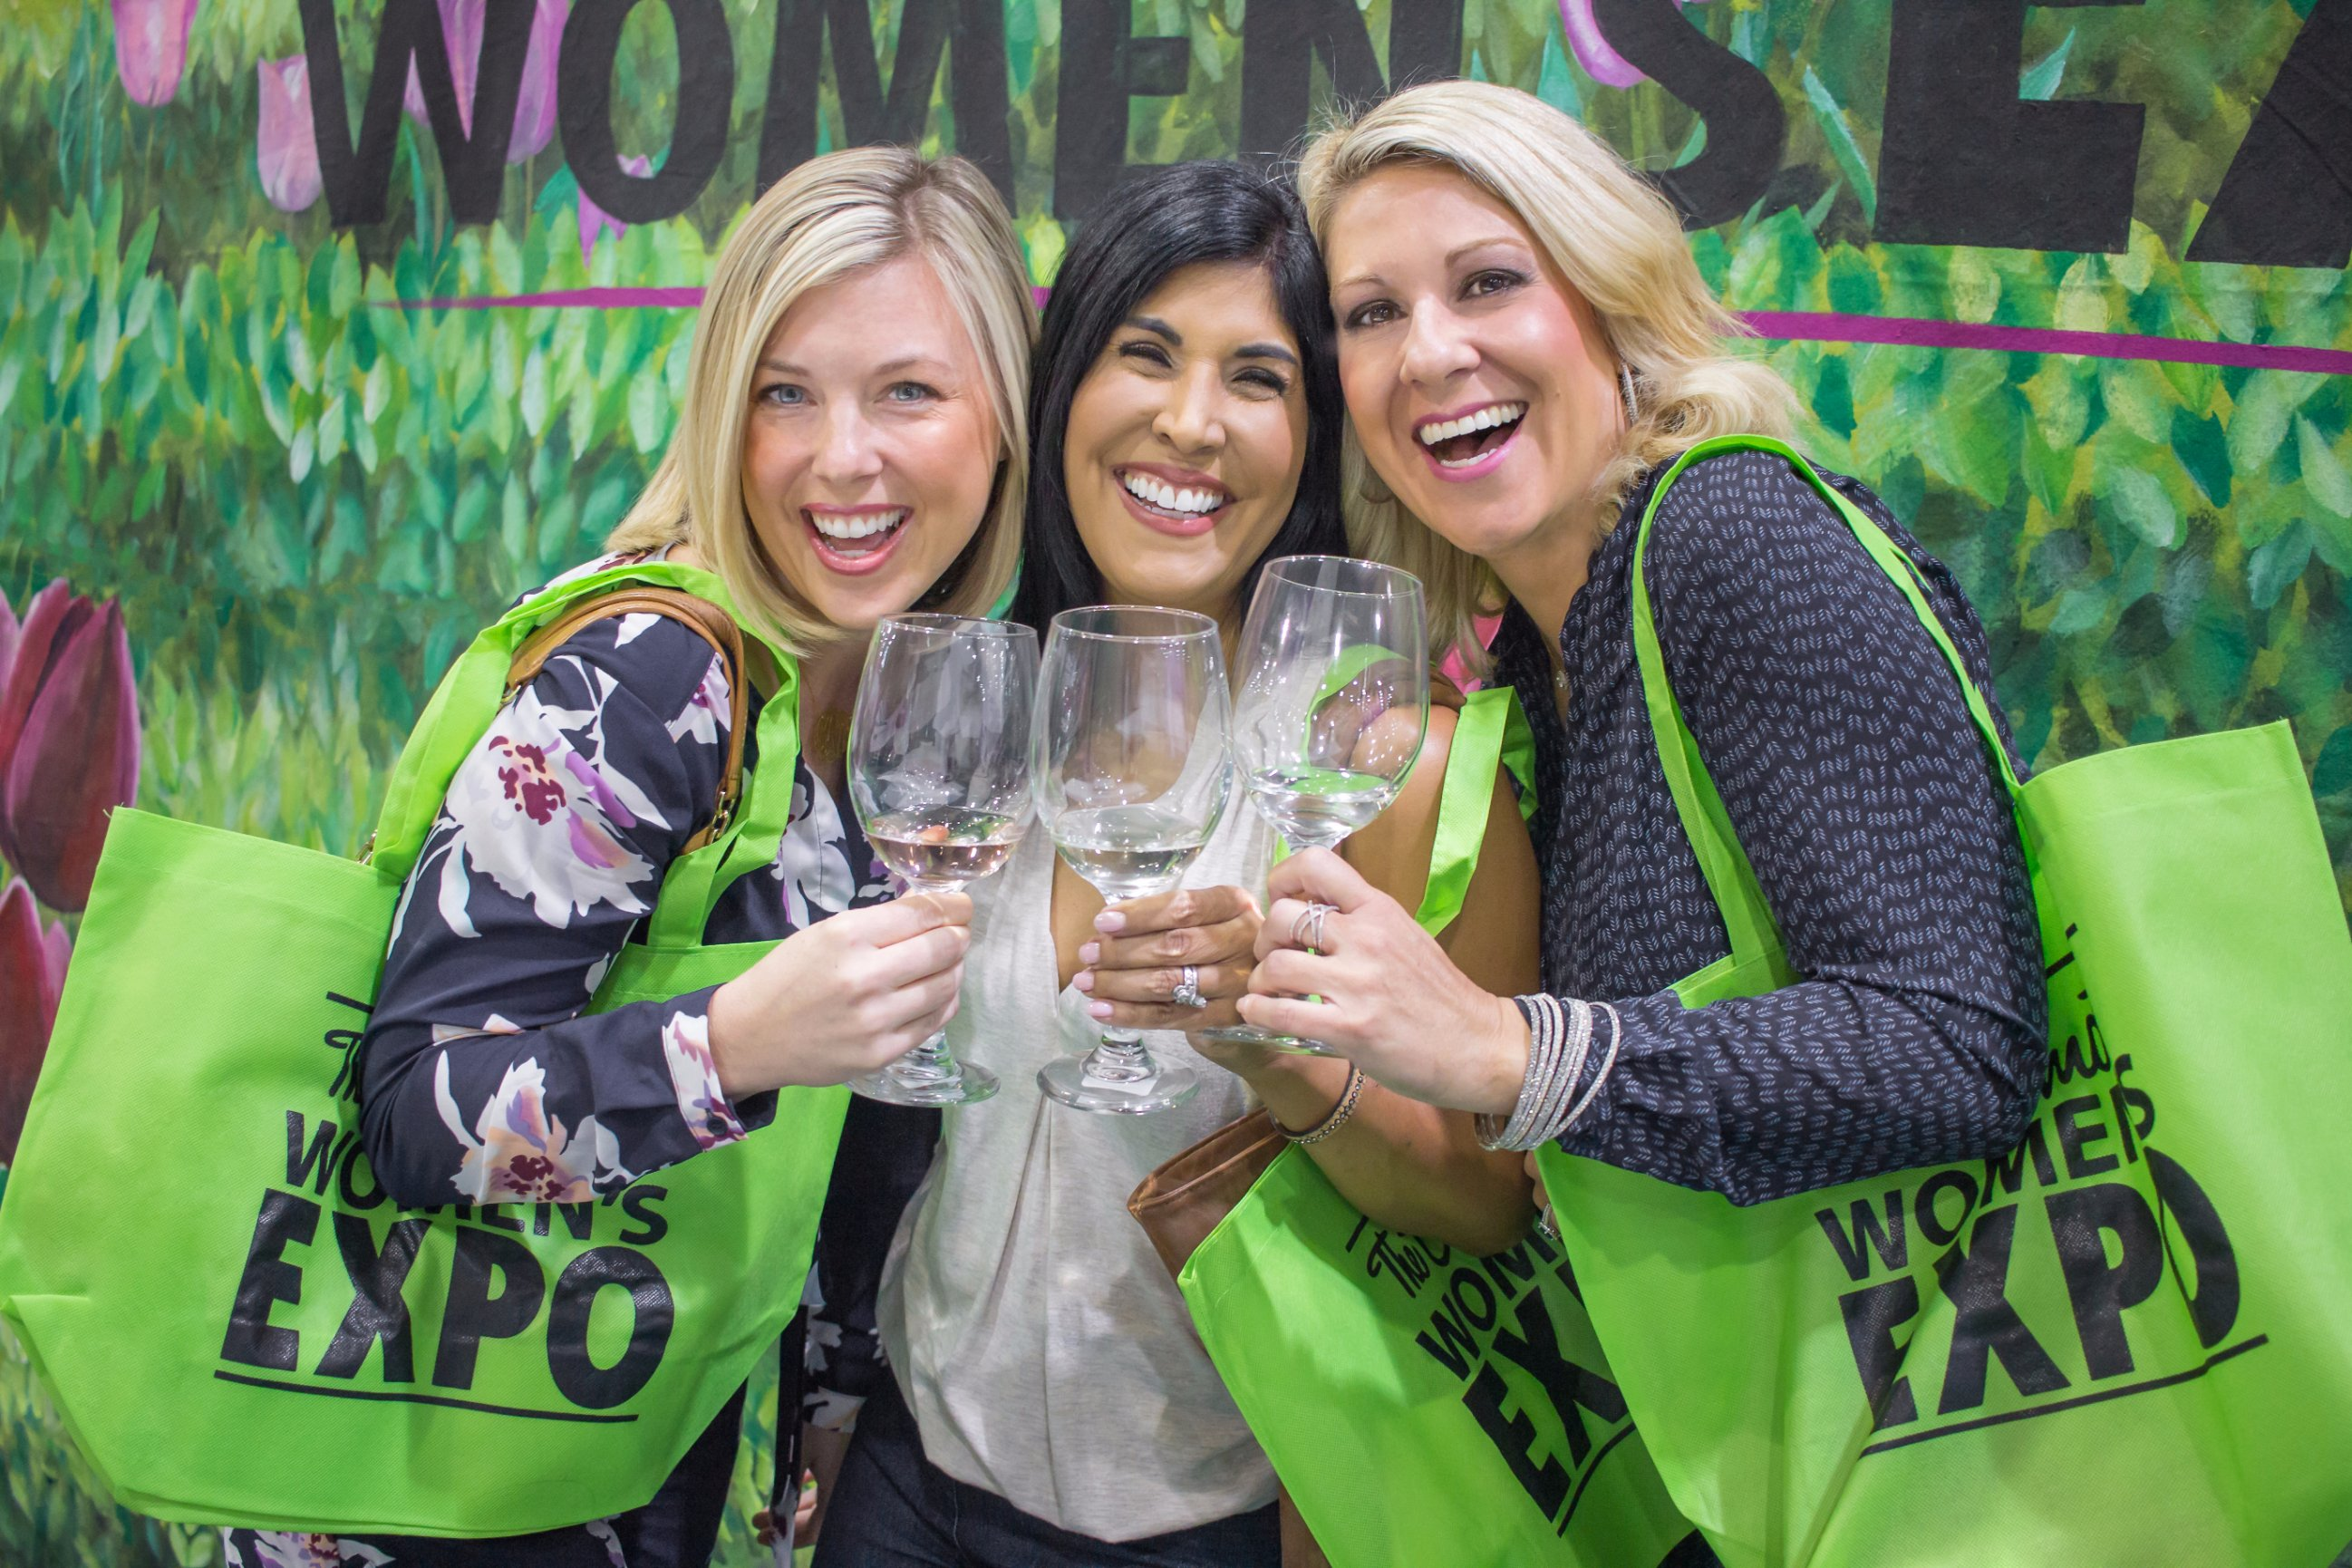 Arizona's Ultimate Women's Expo Tastings